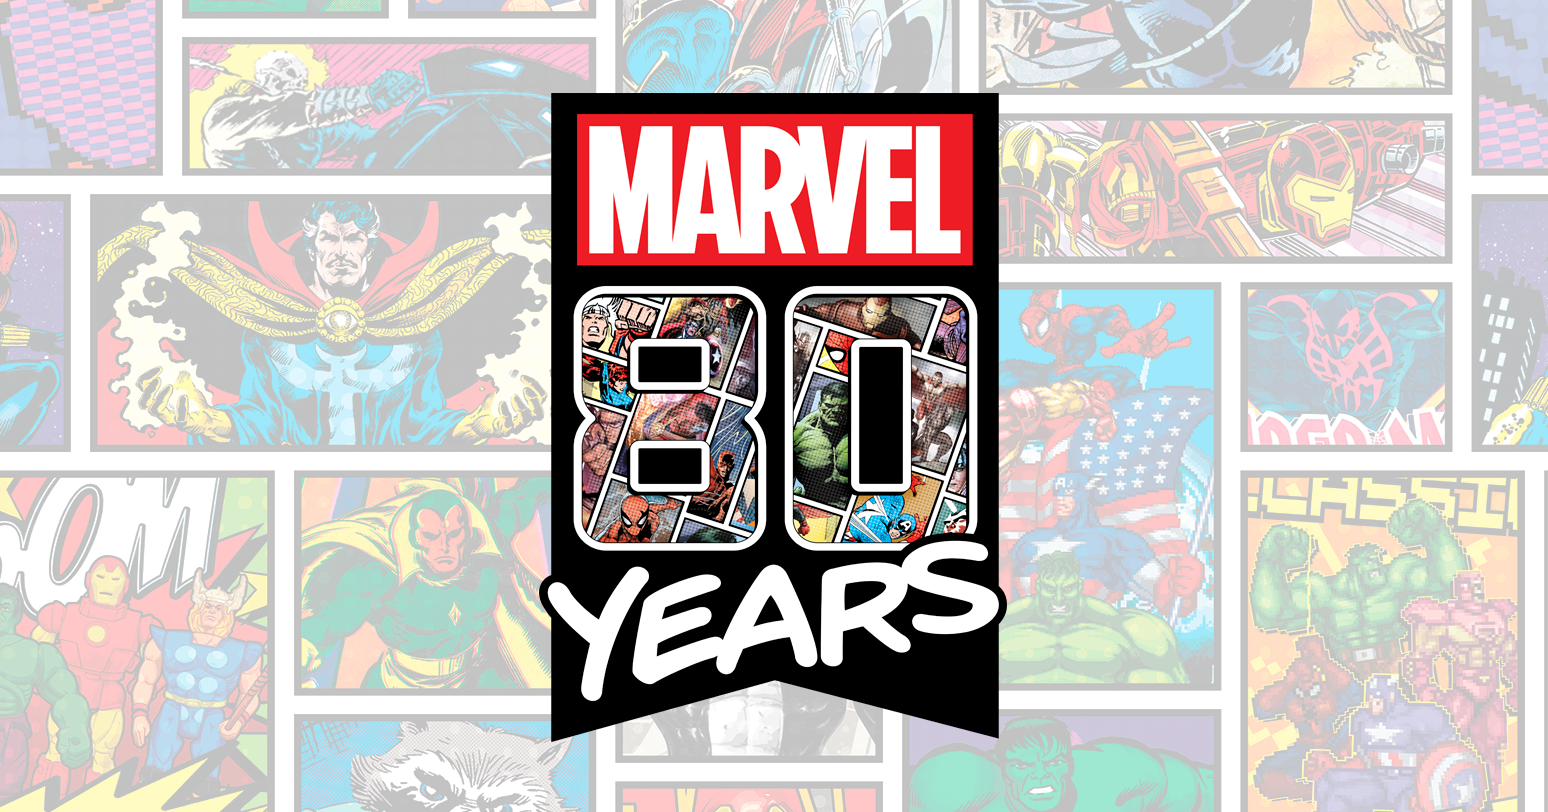 The Blot Says: Marvel Comics 80th Anniversary Screen